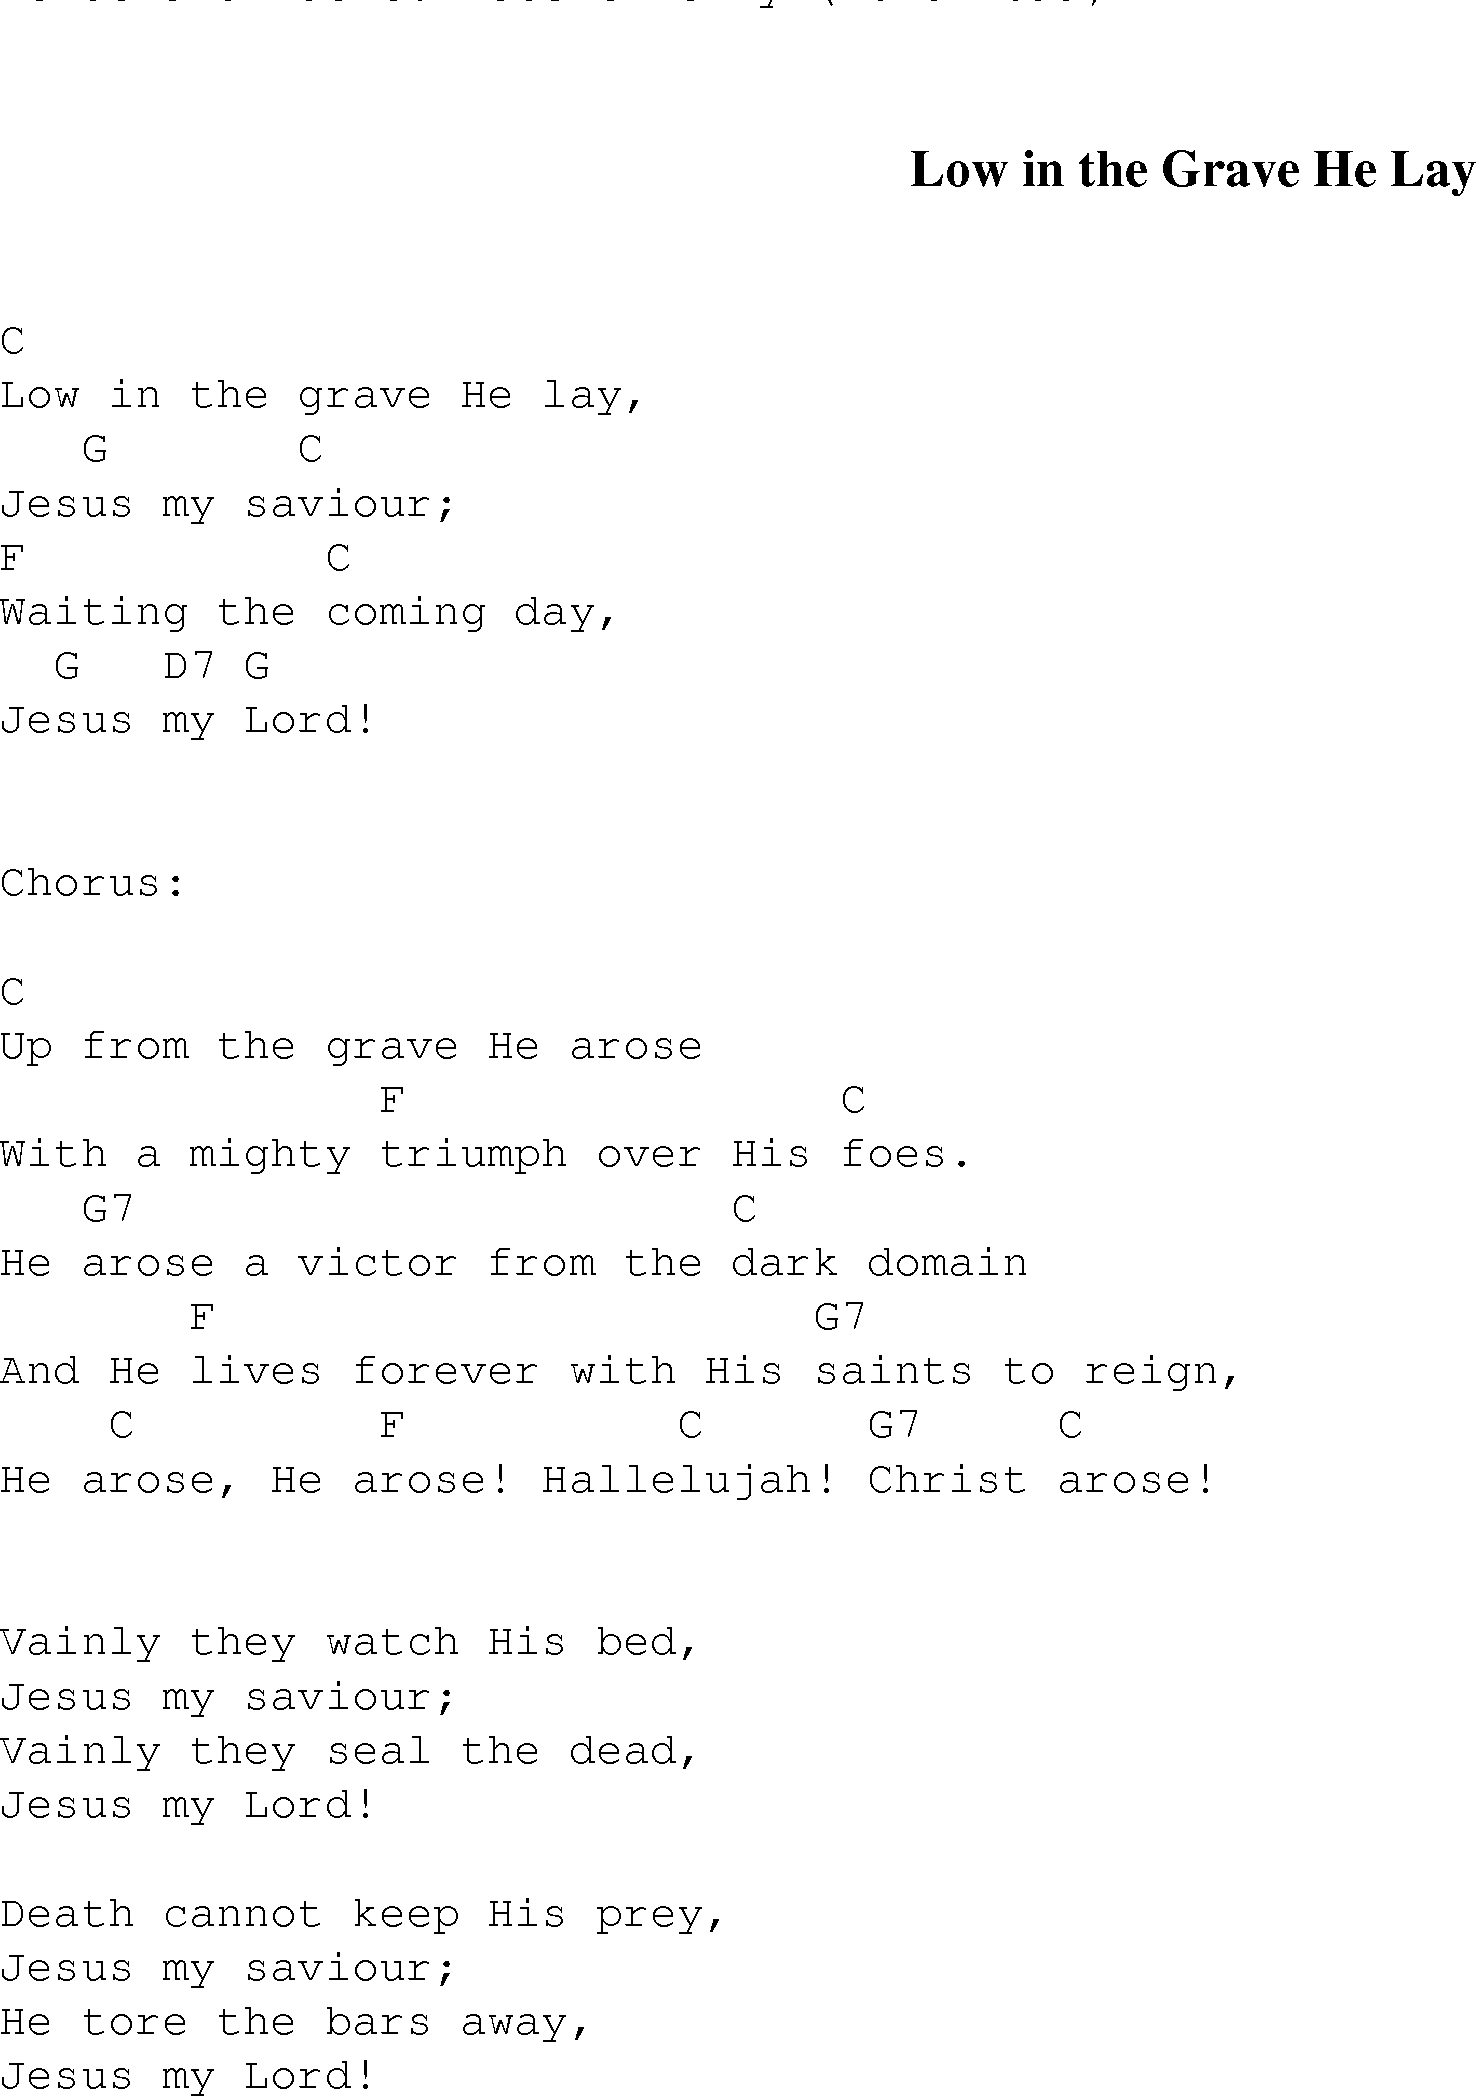 Forever Reign Chords Low In The Grave Christian Gospel Song Lyrics And Chords